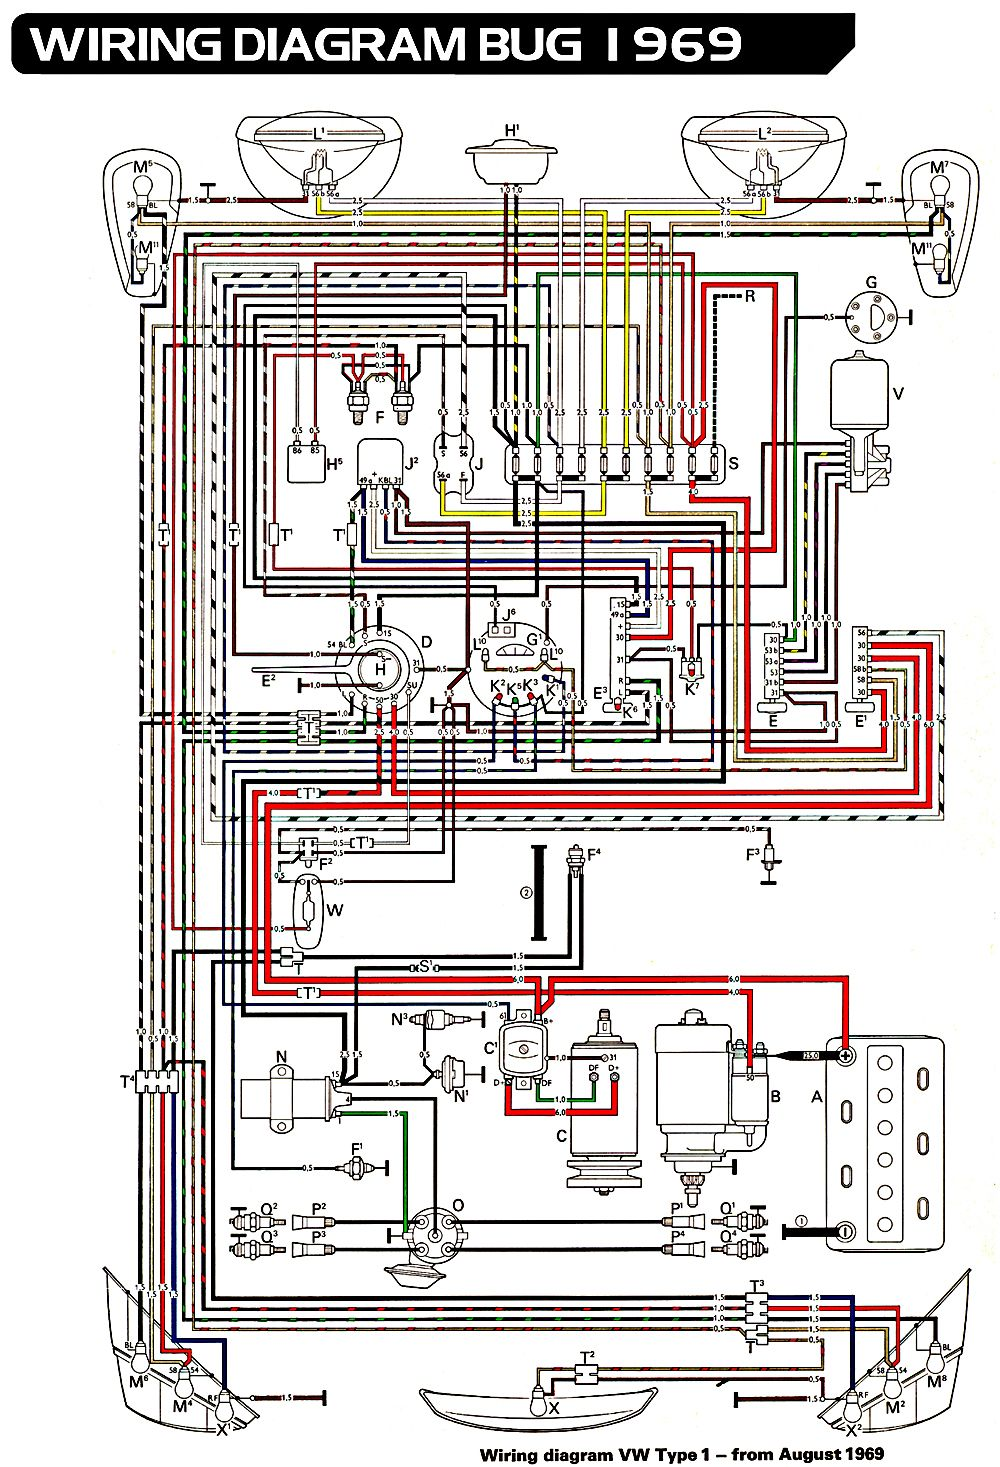 6d75c15875479254f26a32a8499d9044 volkswagen beetle wiring diagram 1966 vw beetle wiring vw bug wiring diagram at n-0.co